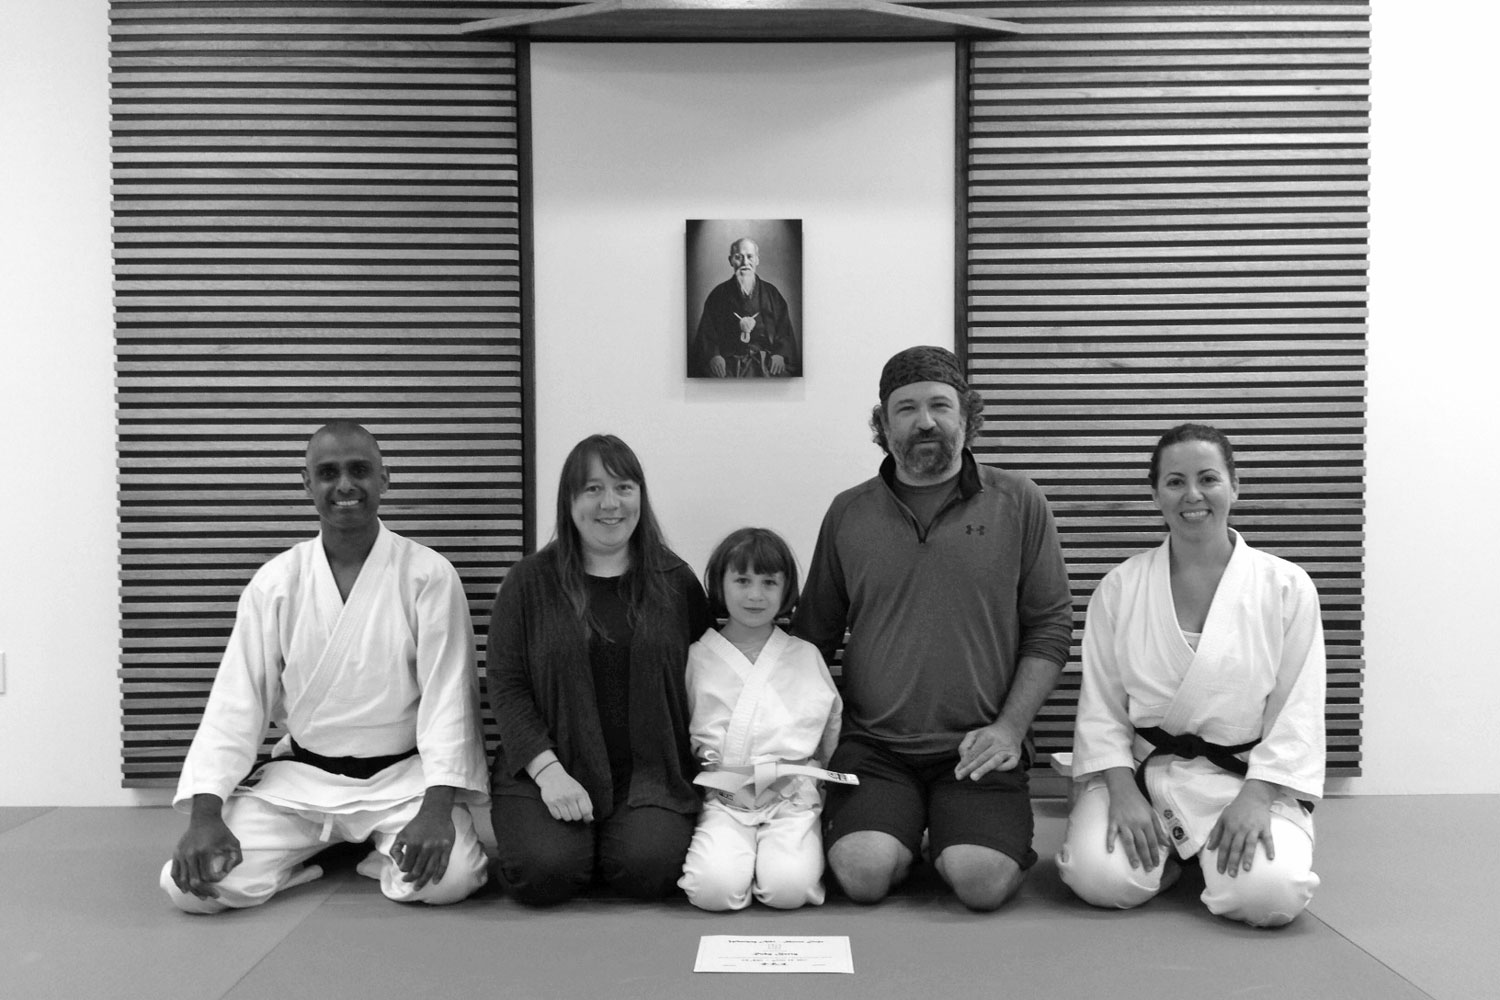 Ruby, her parents and proud Sensei's after successfully completing her Kyu test!